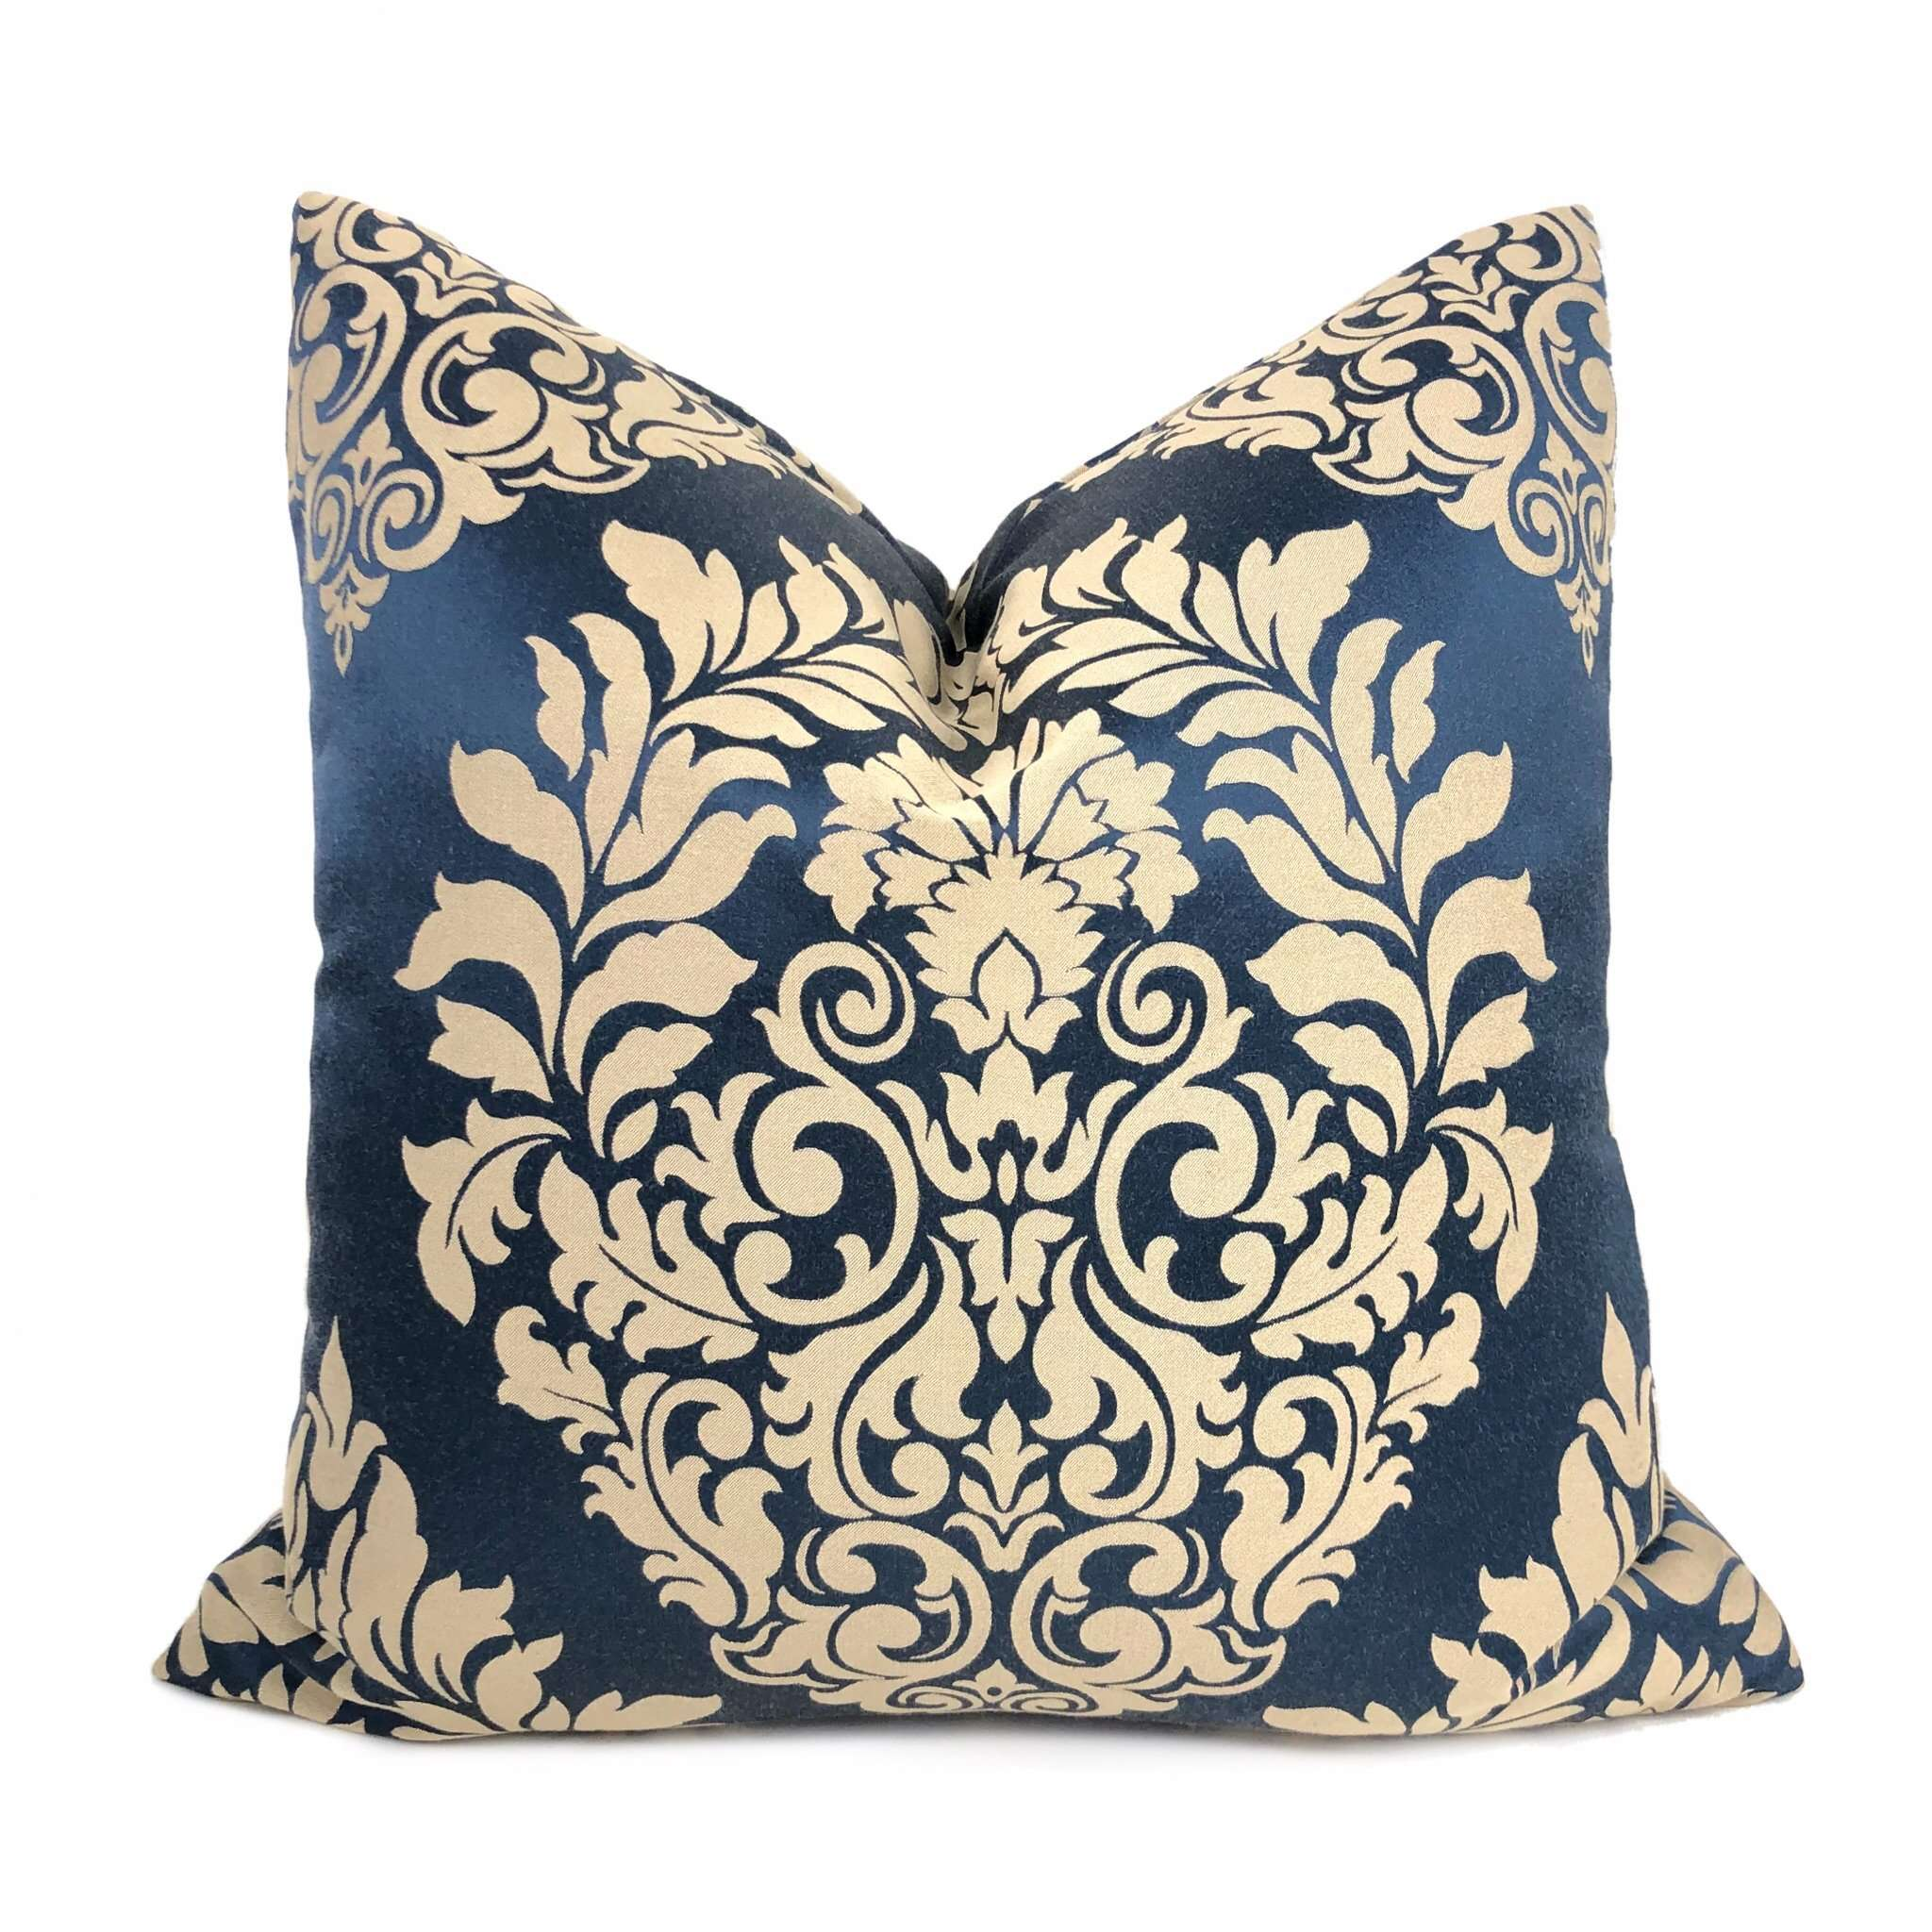 Sapphire Blue Beige Satin Damask Pillow Cushion Cover Cushion Pillow Case Euro Sham 16x16 18x18 20x20 22x22 24x24 26x26 28x28 Lumbar Pillow 12x18 12x20 12x24 14x20 16x26 by Aloriam